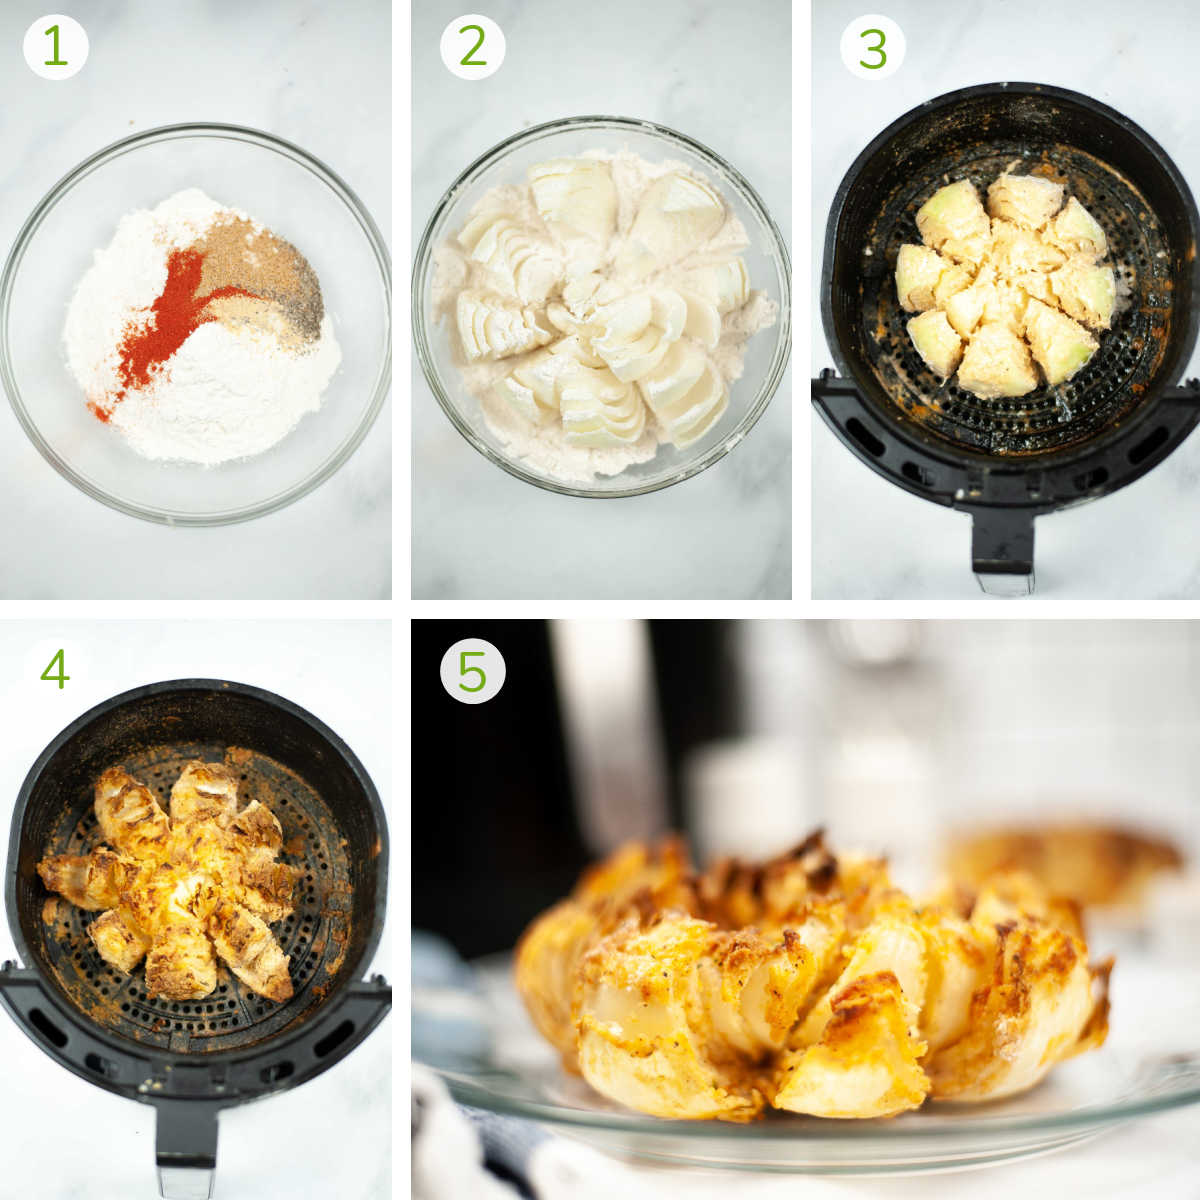 several photos showing how to mix the seasoning, coat the sliced onion and air frying it.